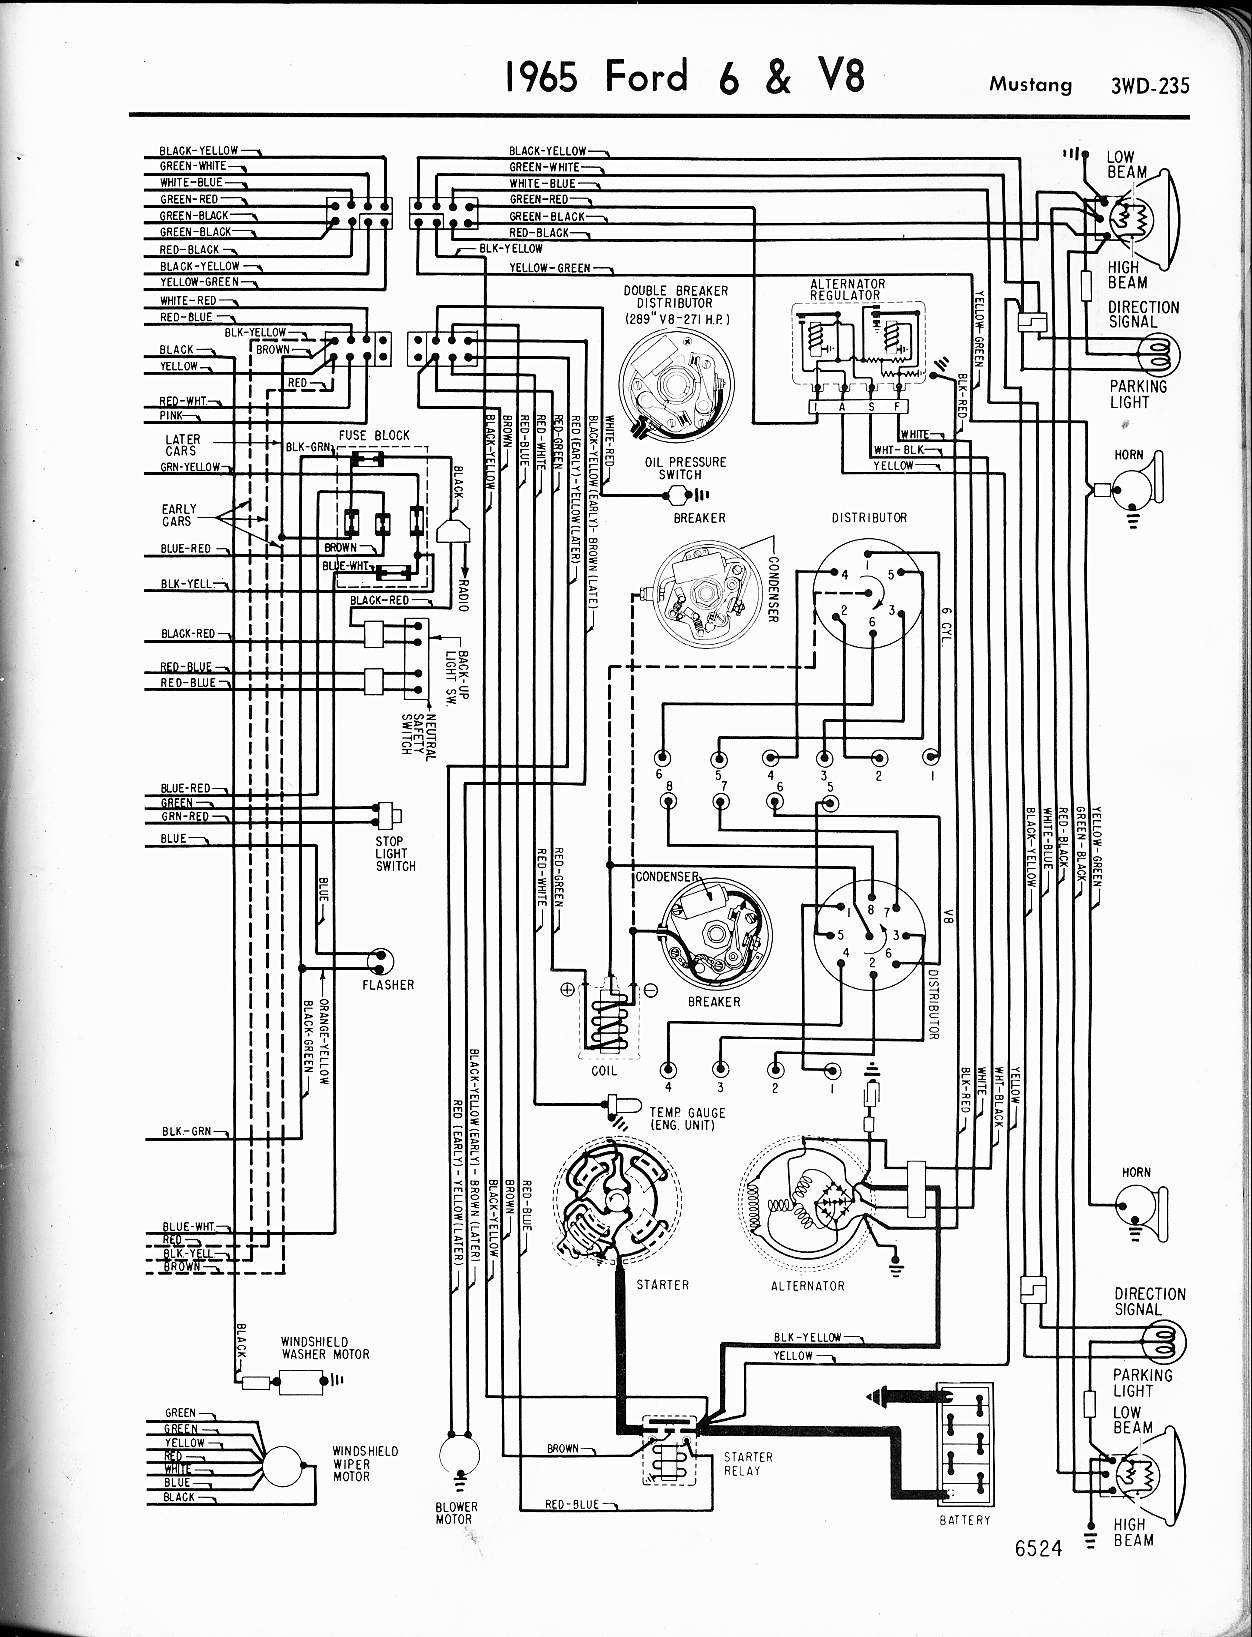 1965_mustang_wiring_2 69 mustang wiring diagram 1969 ford f100 wiring diagram \u2022 wiring 66 mustang ignition wiring diagram at soozxer.org